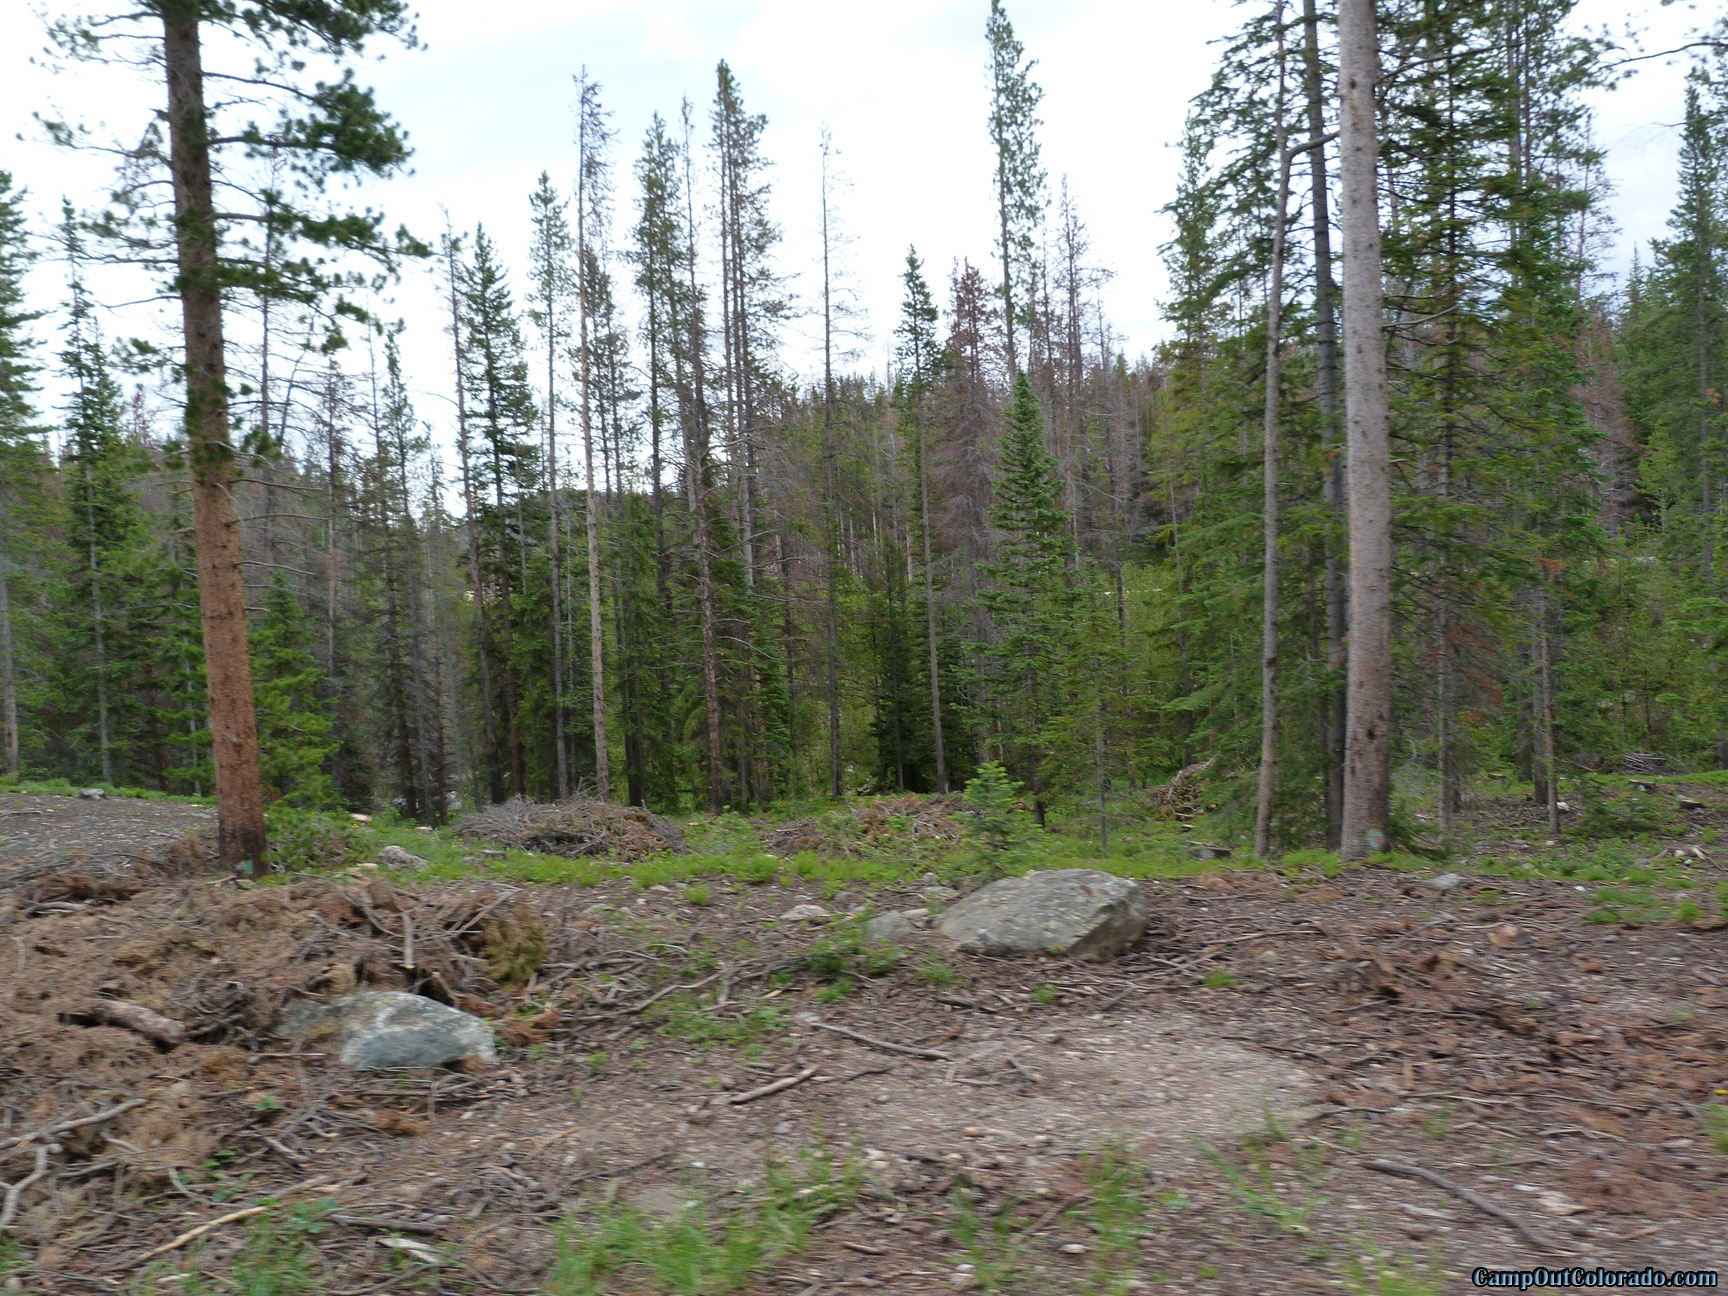 camp-out-colorado-chambers-lake-campground-thick-pines